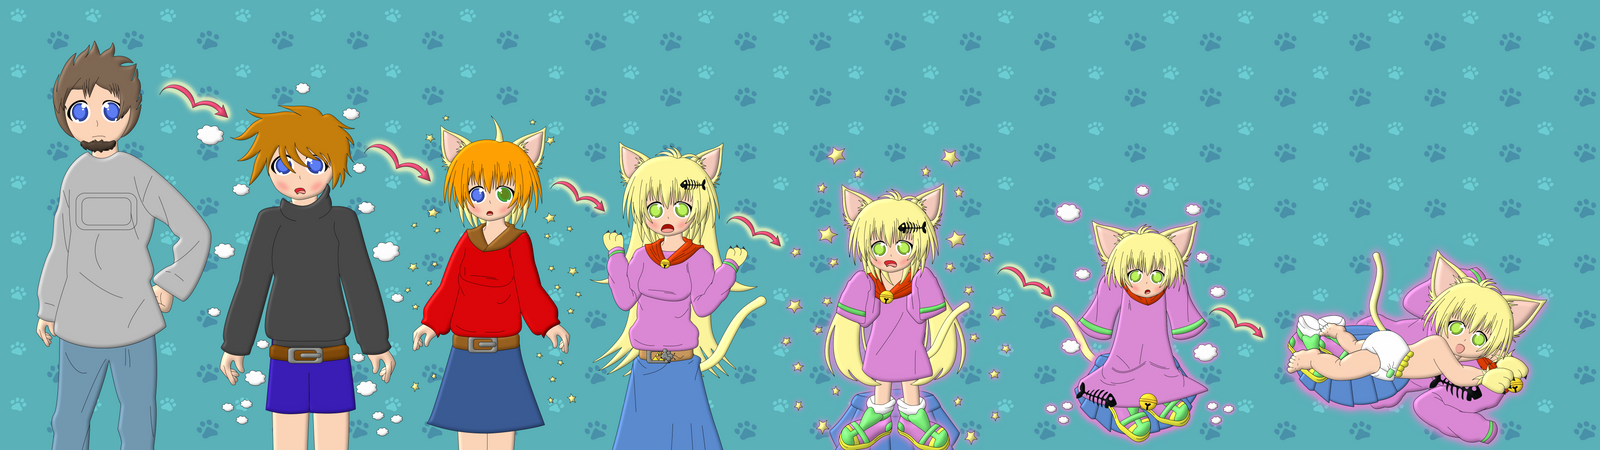 Project TG AR Gold Into Goldie The Little NekoGirl by MikotoWolfskin